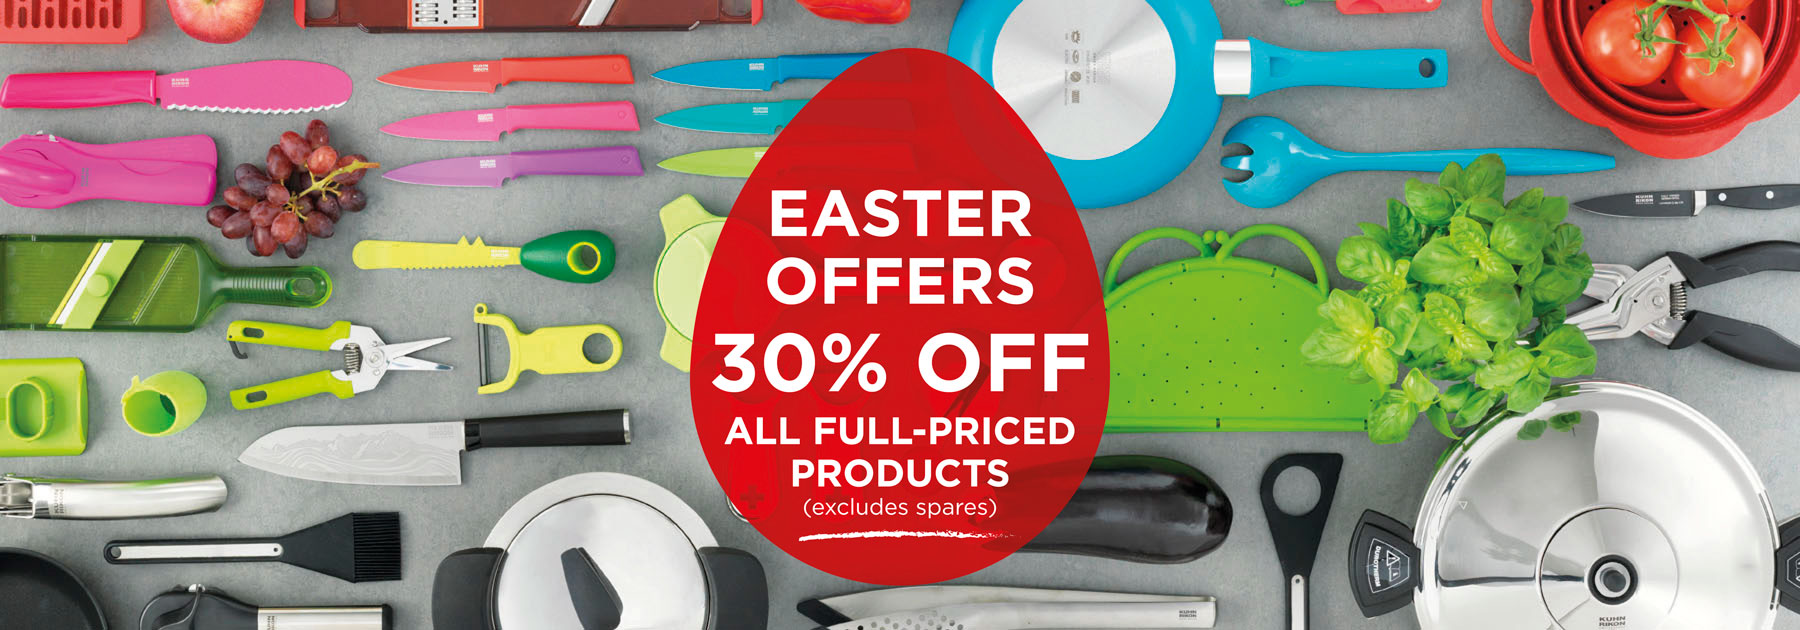 discount, offer, easter, cookware, pressure, cookers, knives, gadgets